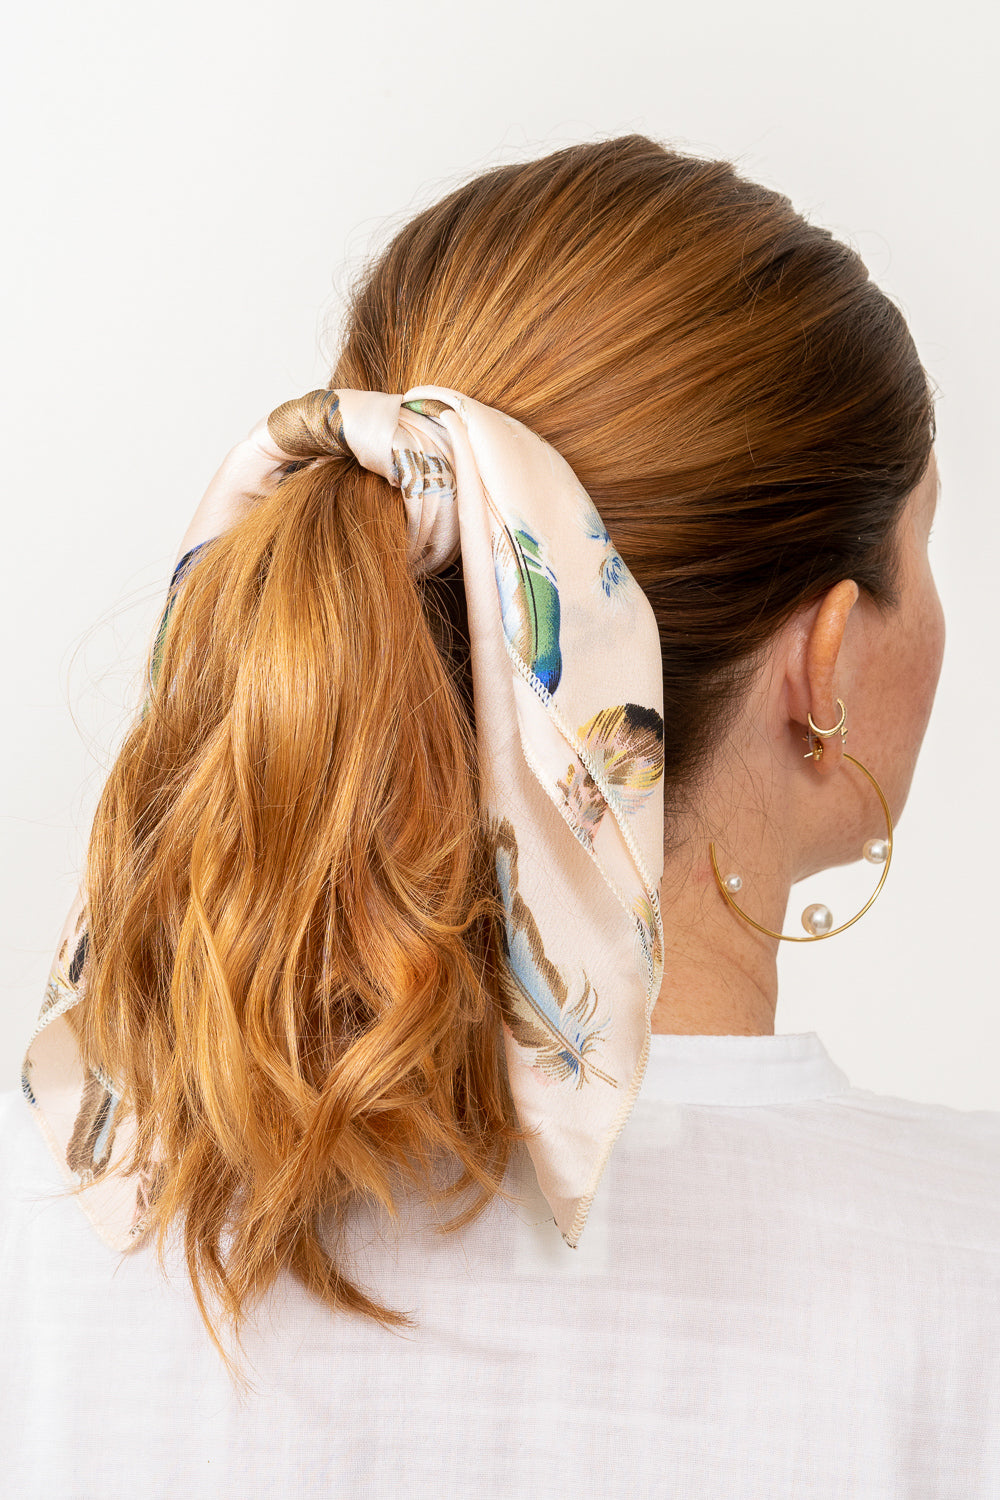 red head model with pale pink print scarf tied in hair ponytail janna conner